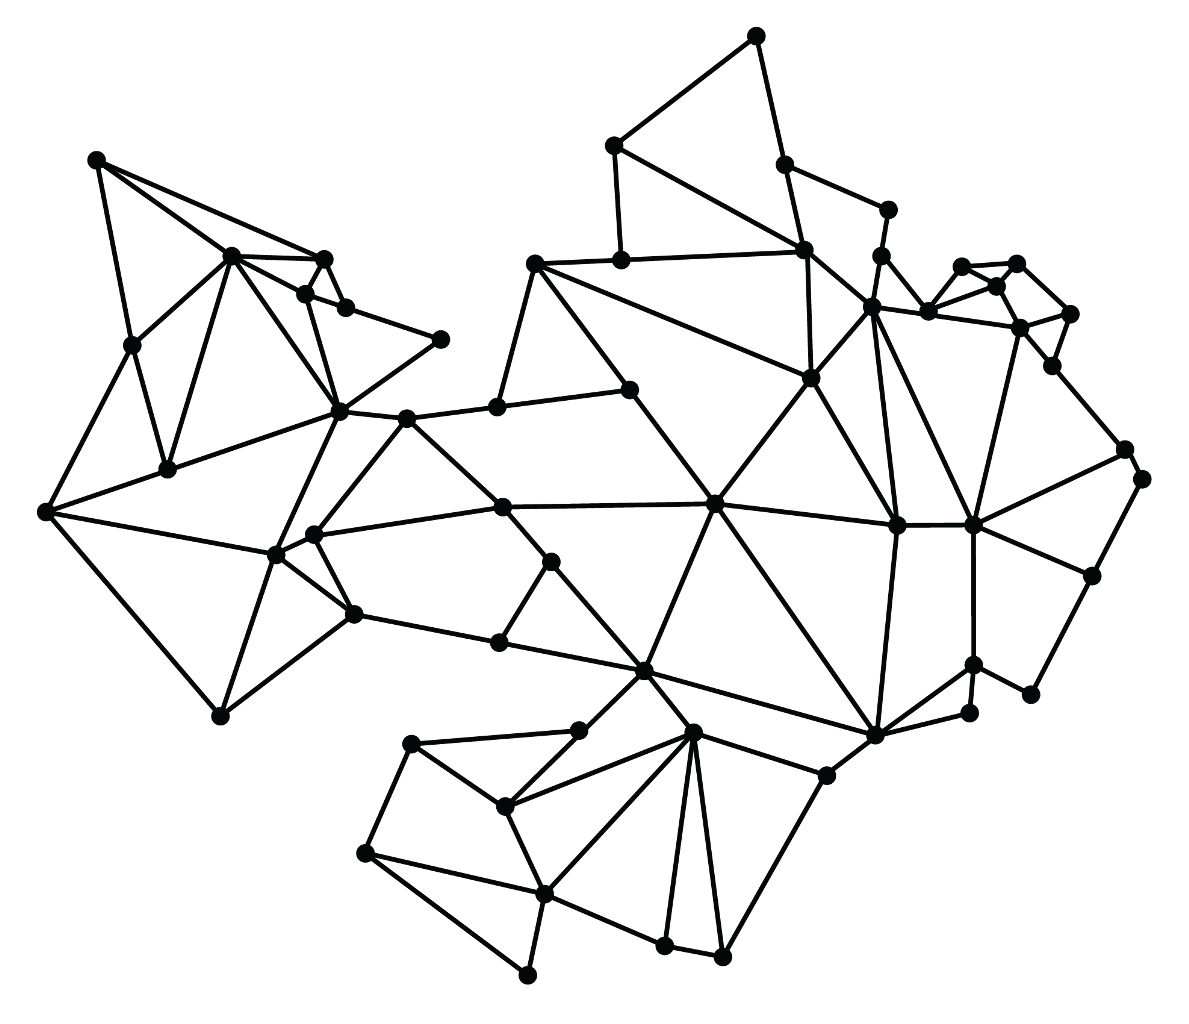 Constellation transparent geometric. Constellations overlay black freetoedit